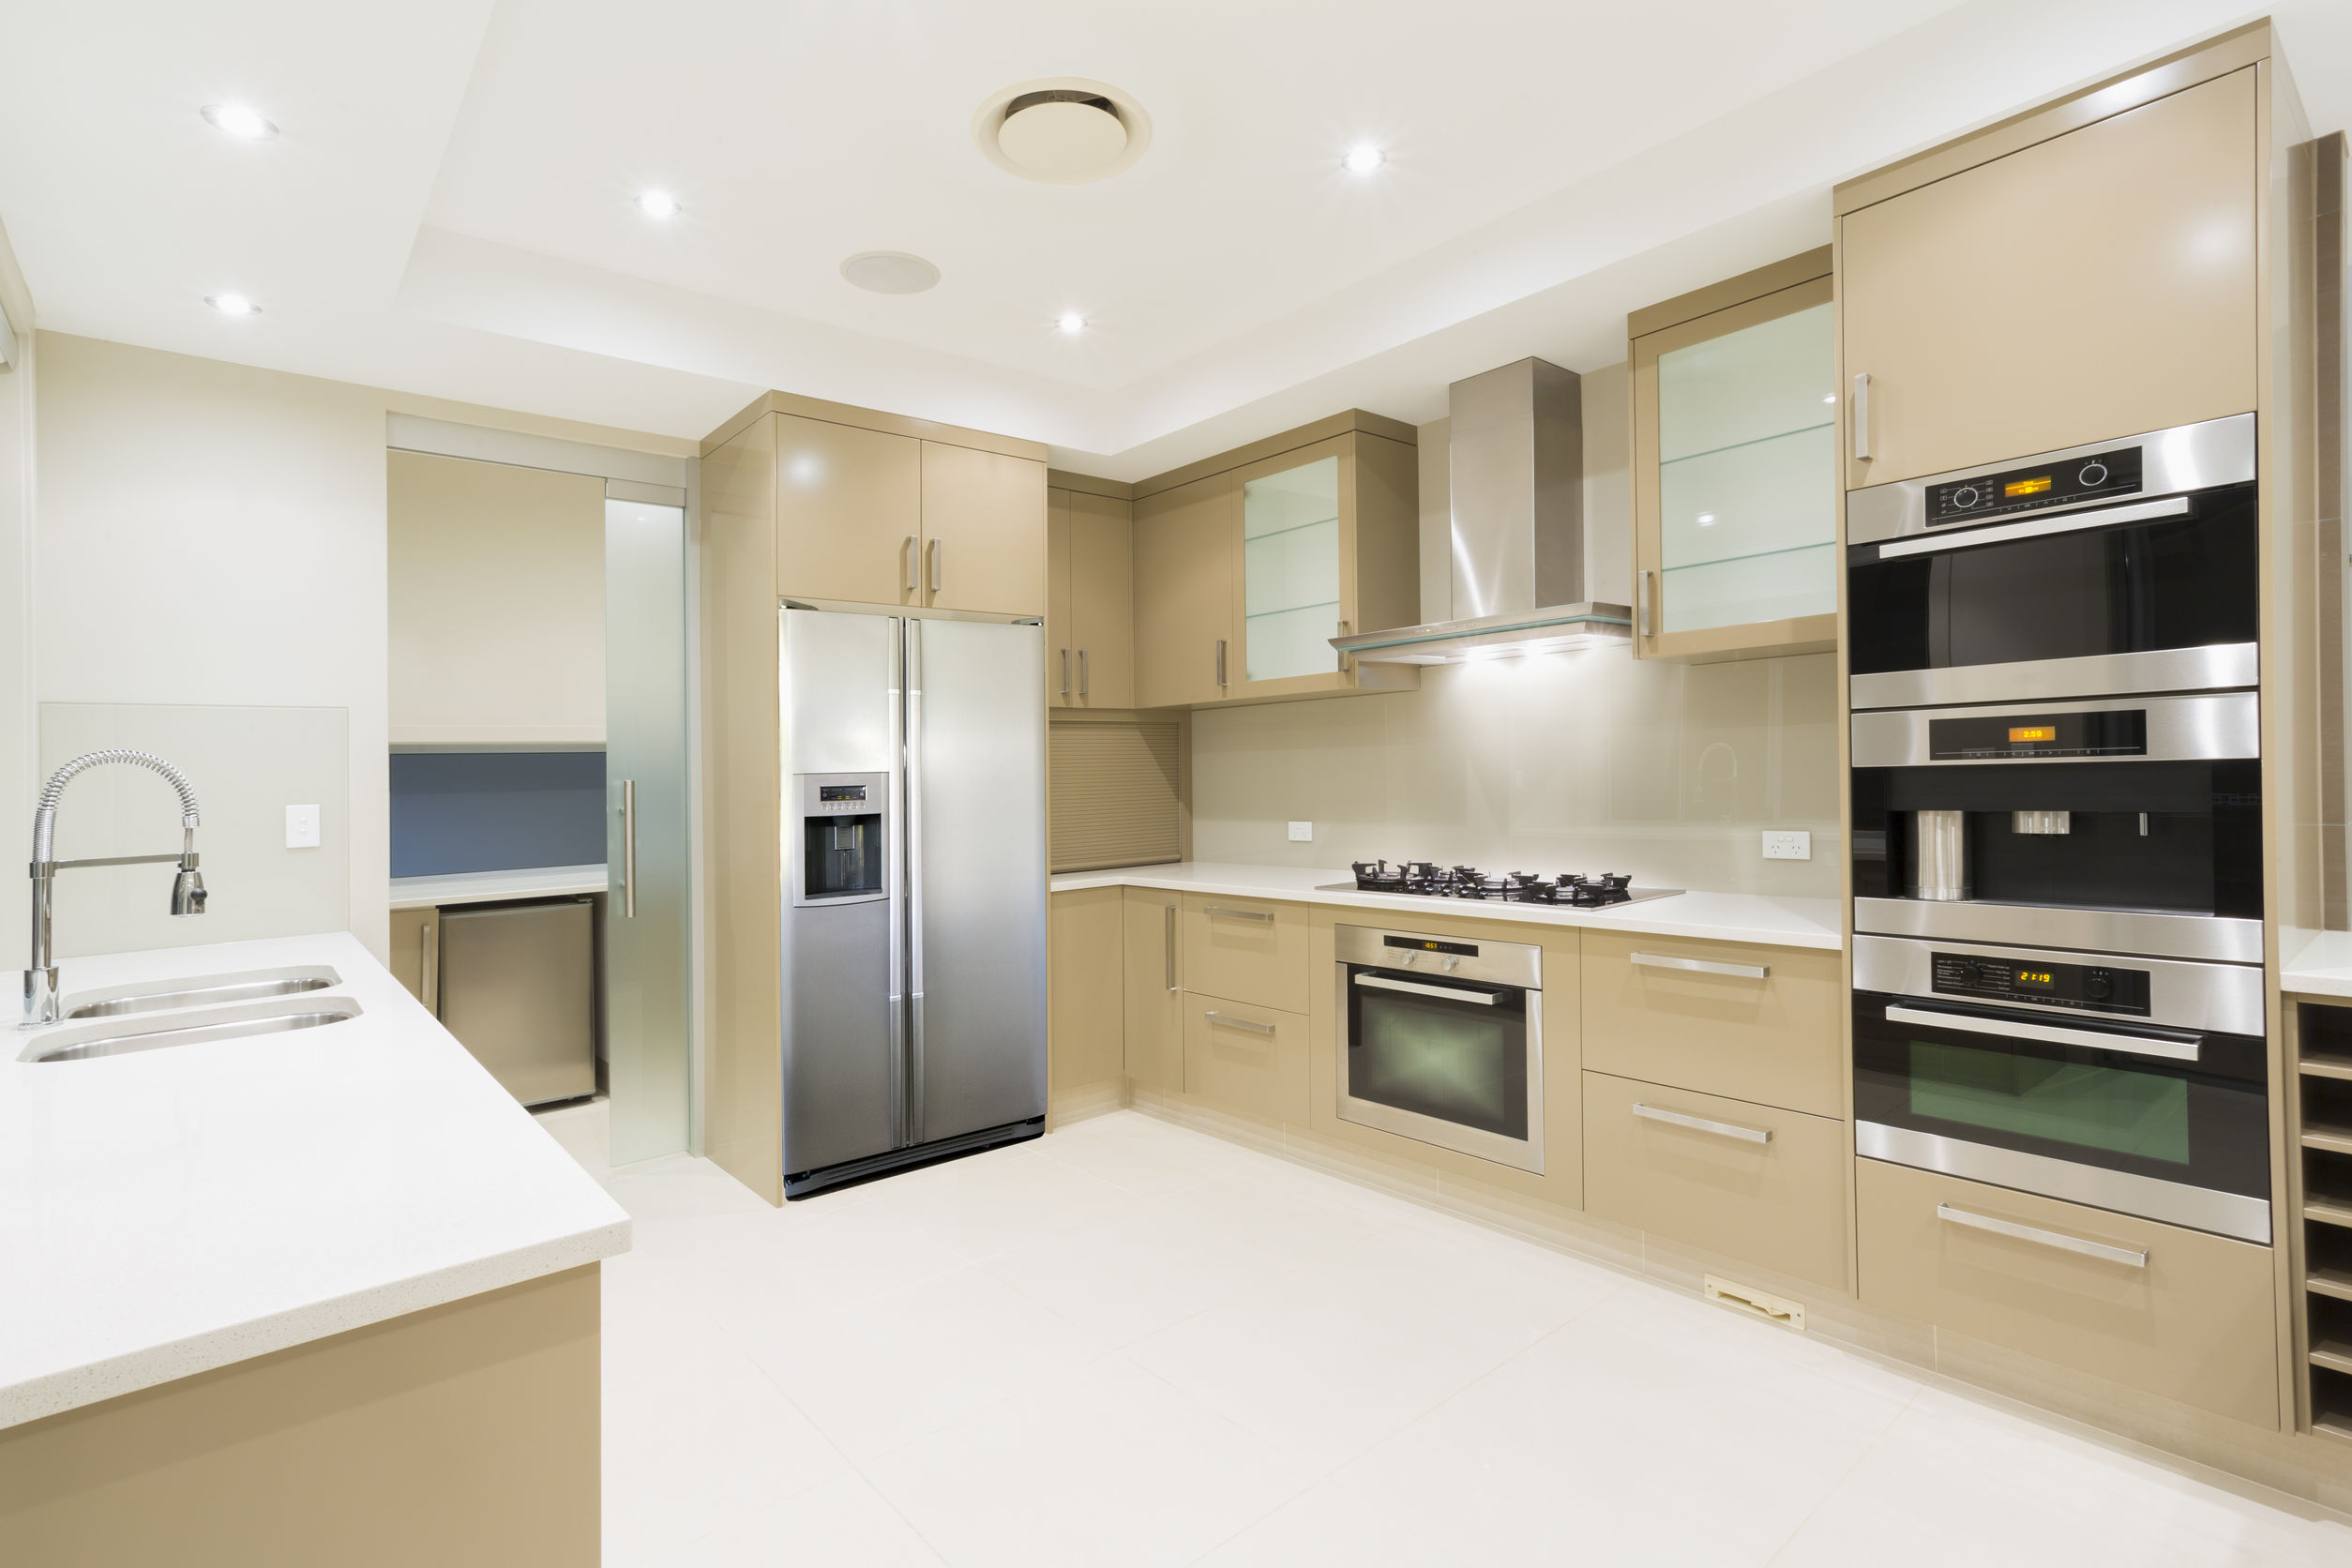 38740105 - modern kitchen with stainless steel appliances in australian mansion